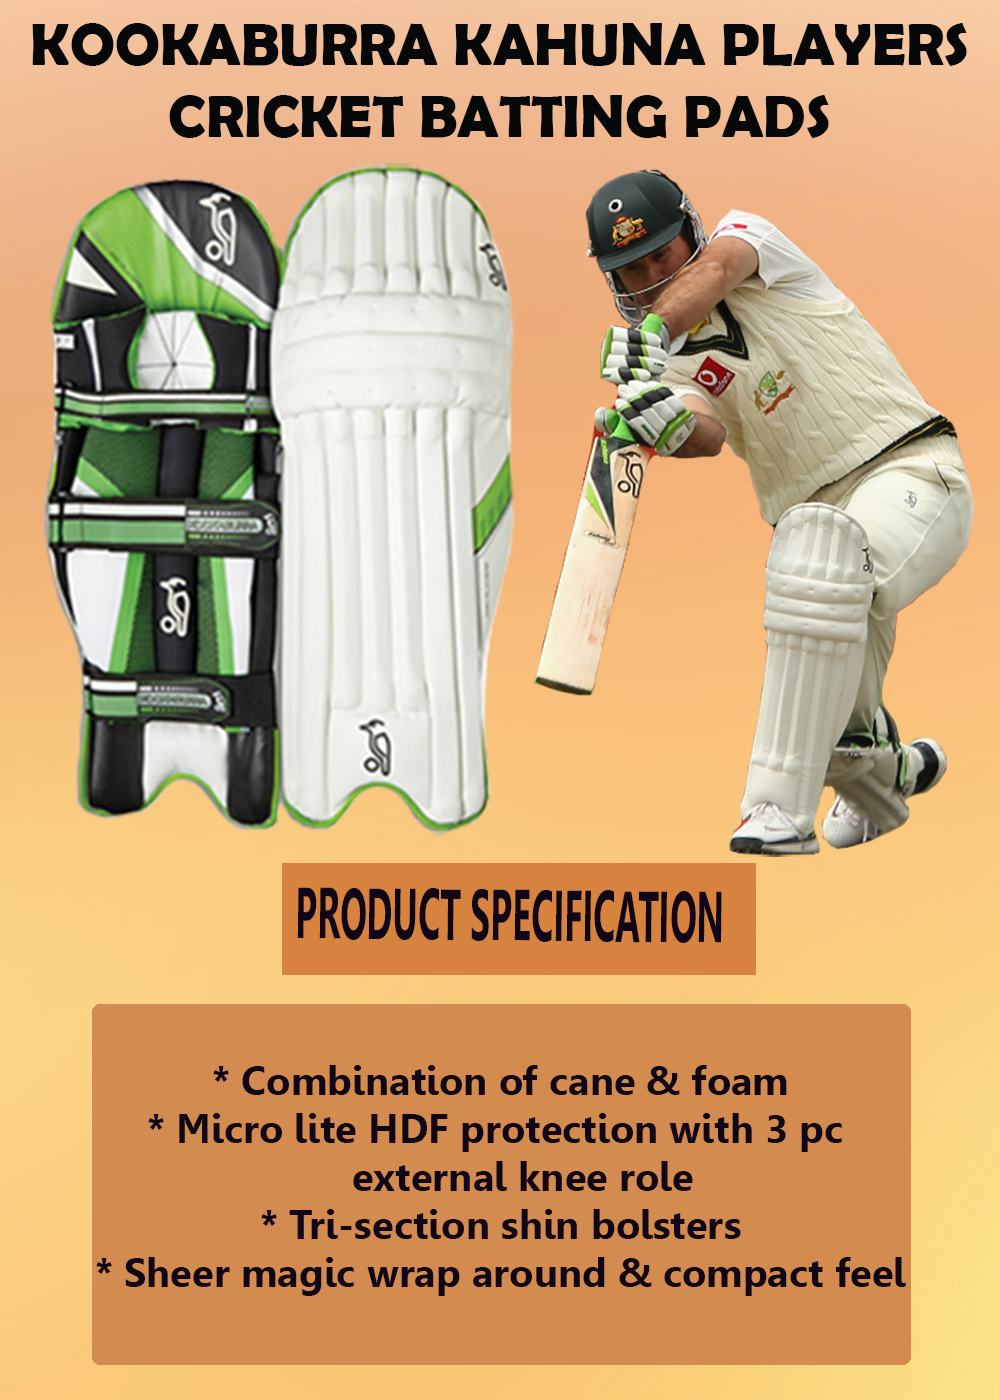 Kookaburra Kahuna Players cricket batting pads_2